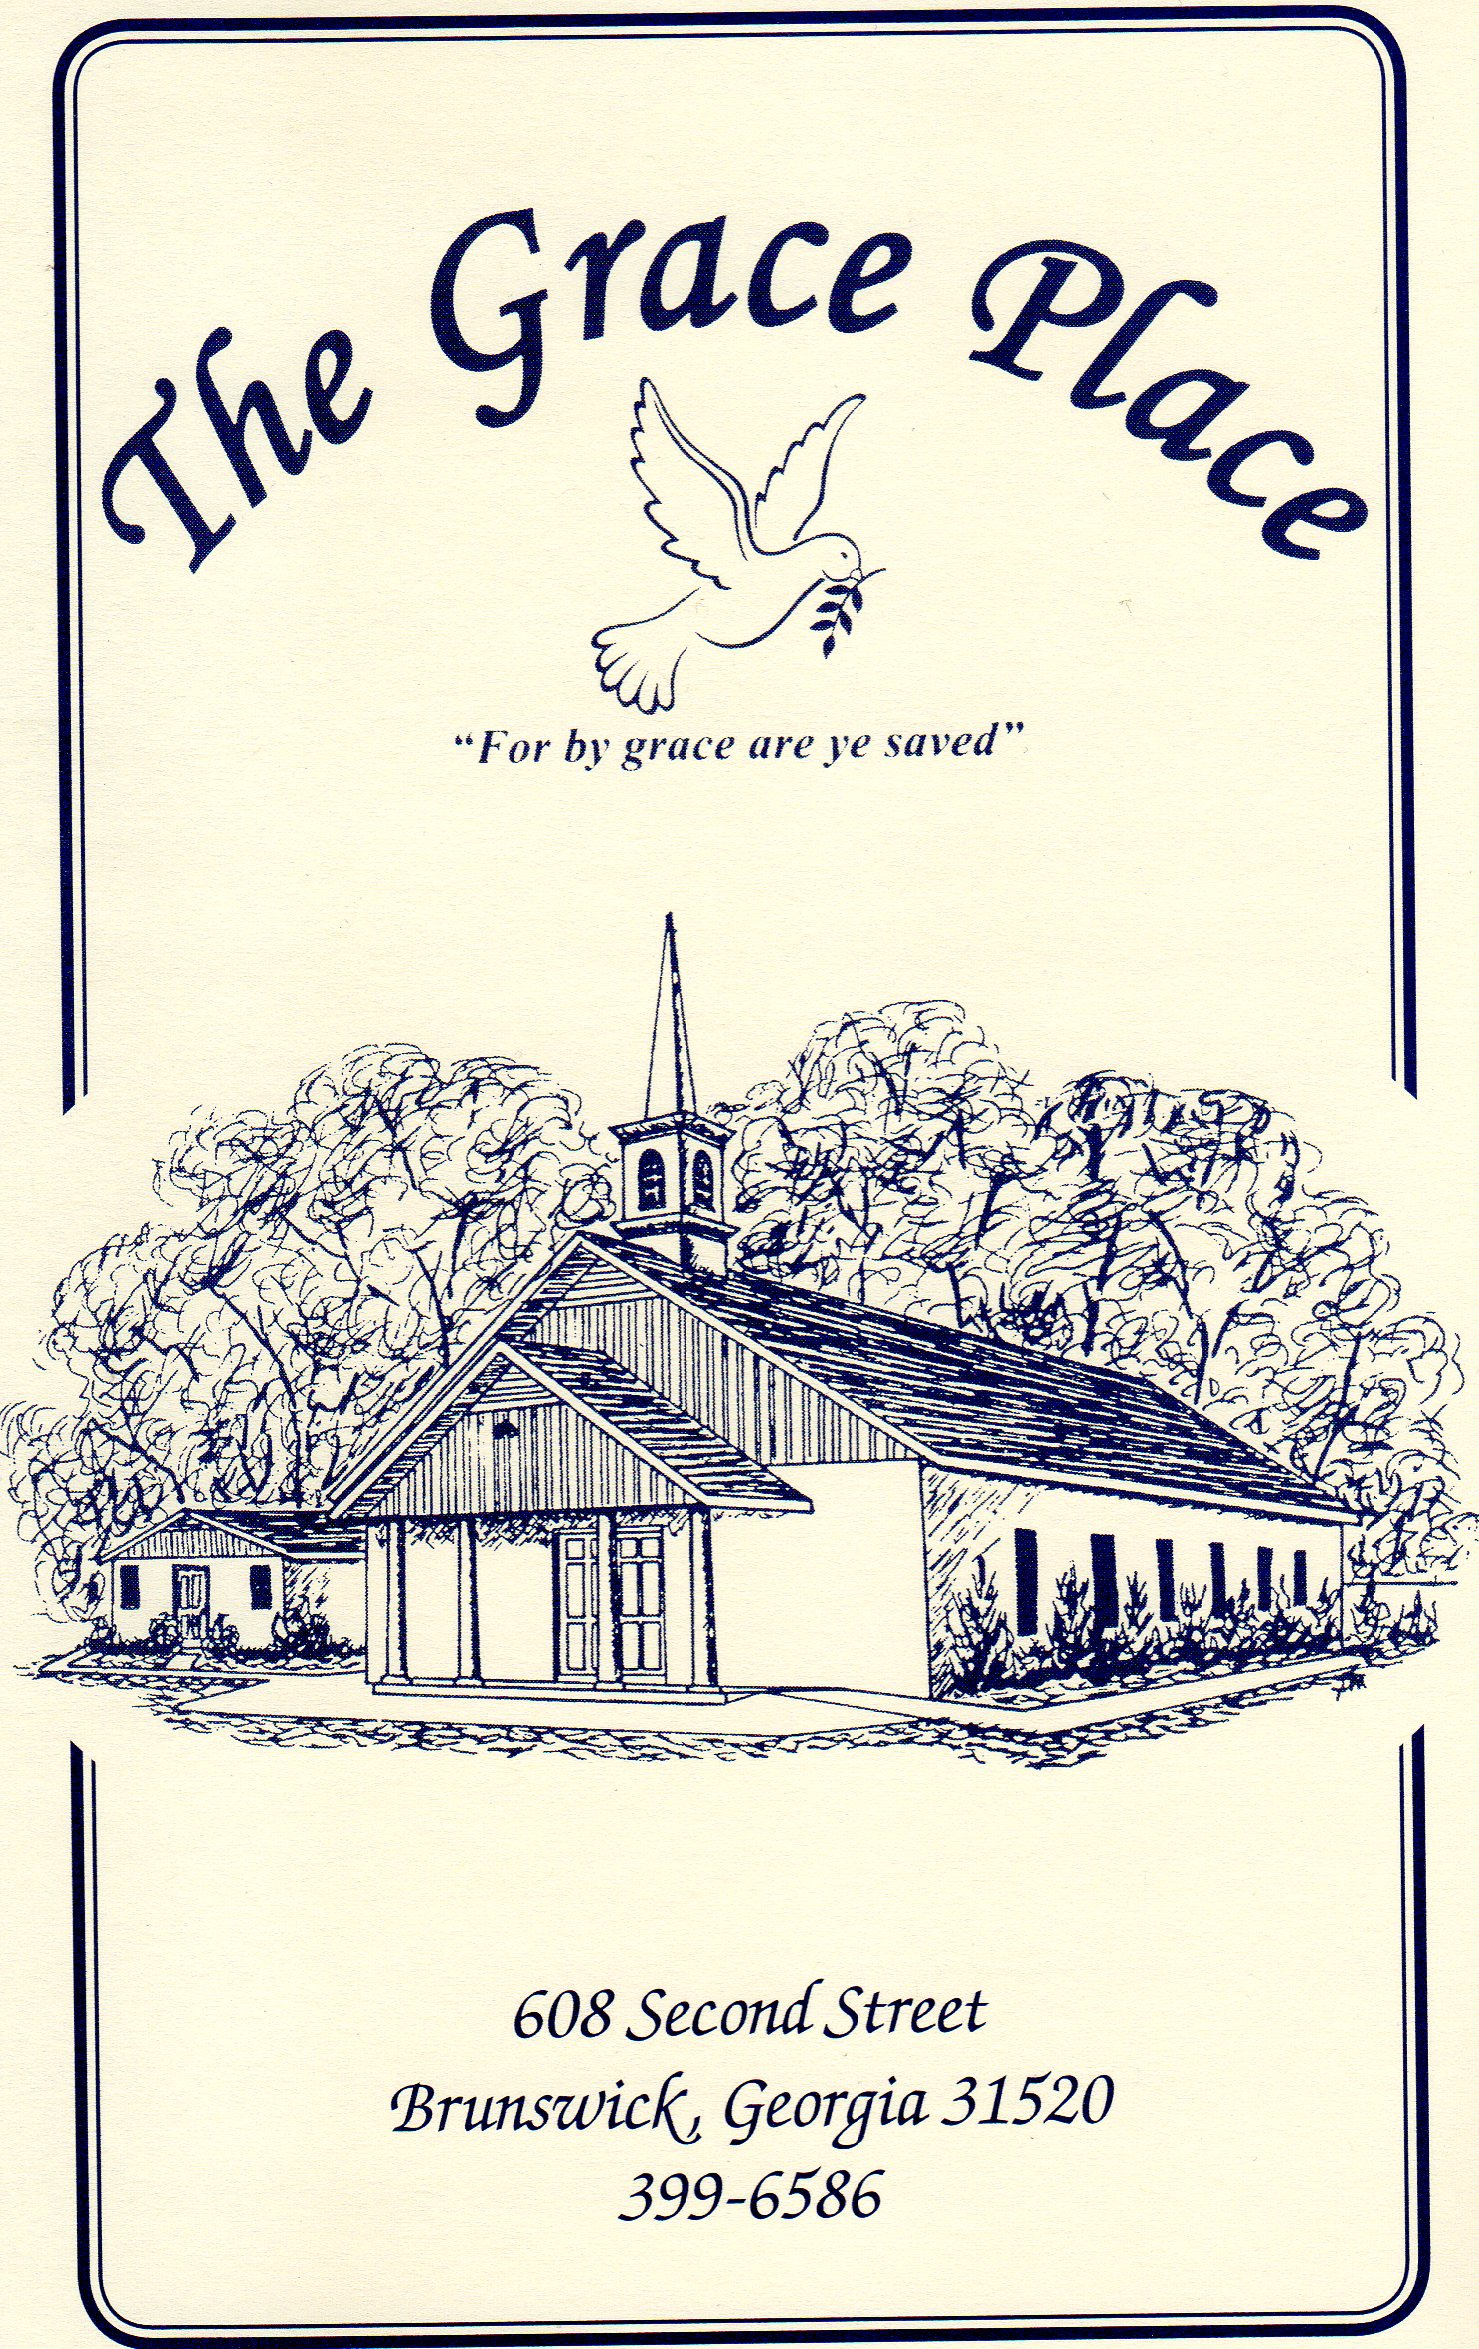 Worship Services, February 2 | The Grace Place Church